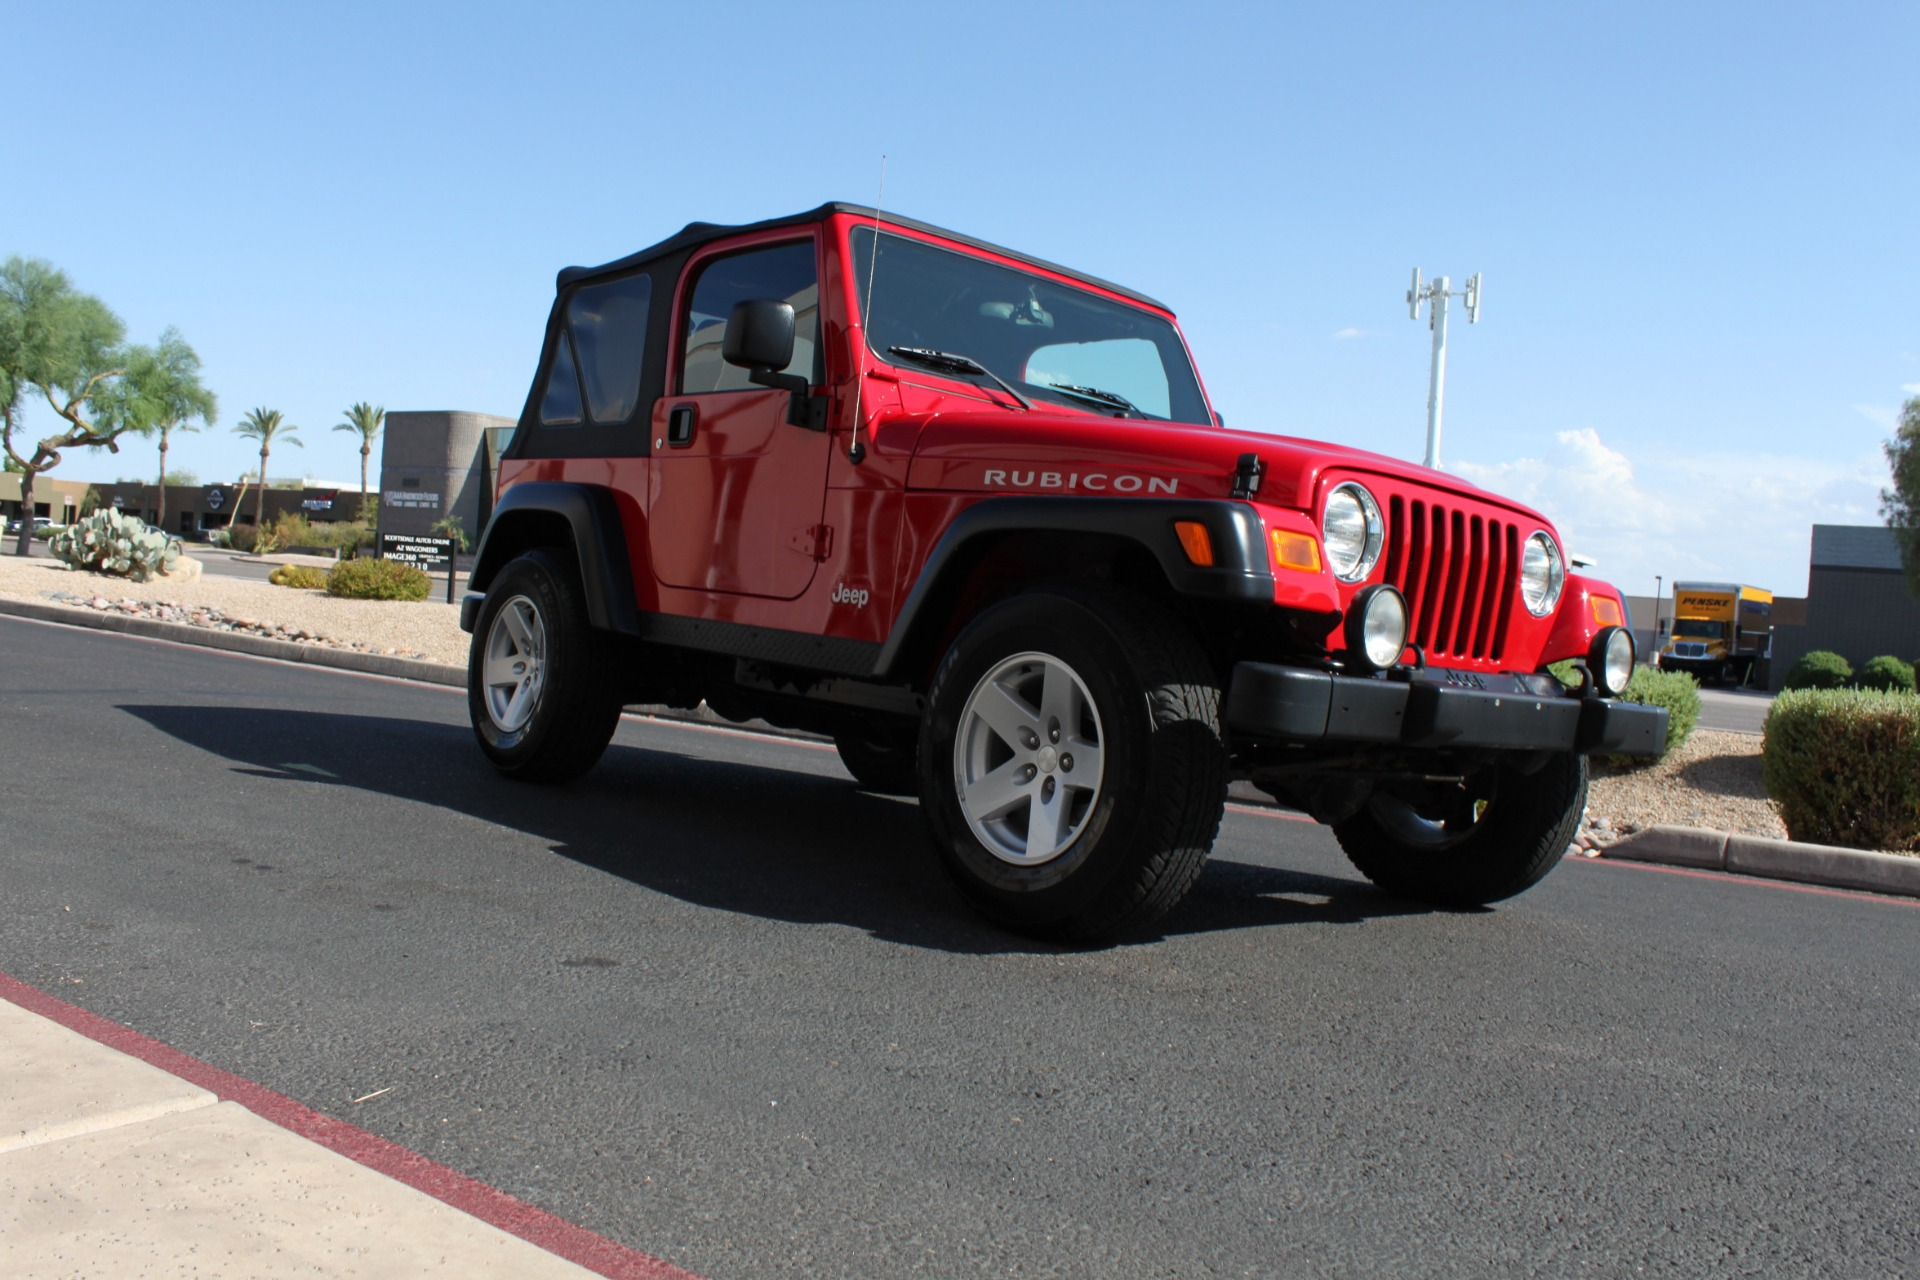 Used-2006-Jeep-Wrangler-Rubicon-Acura